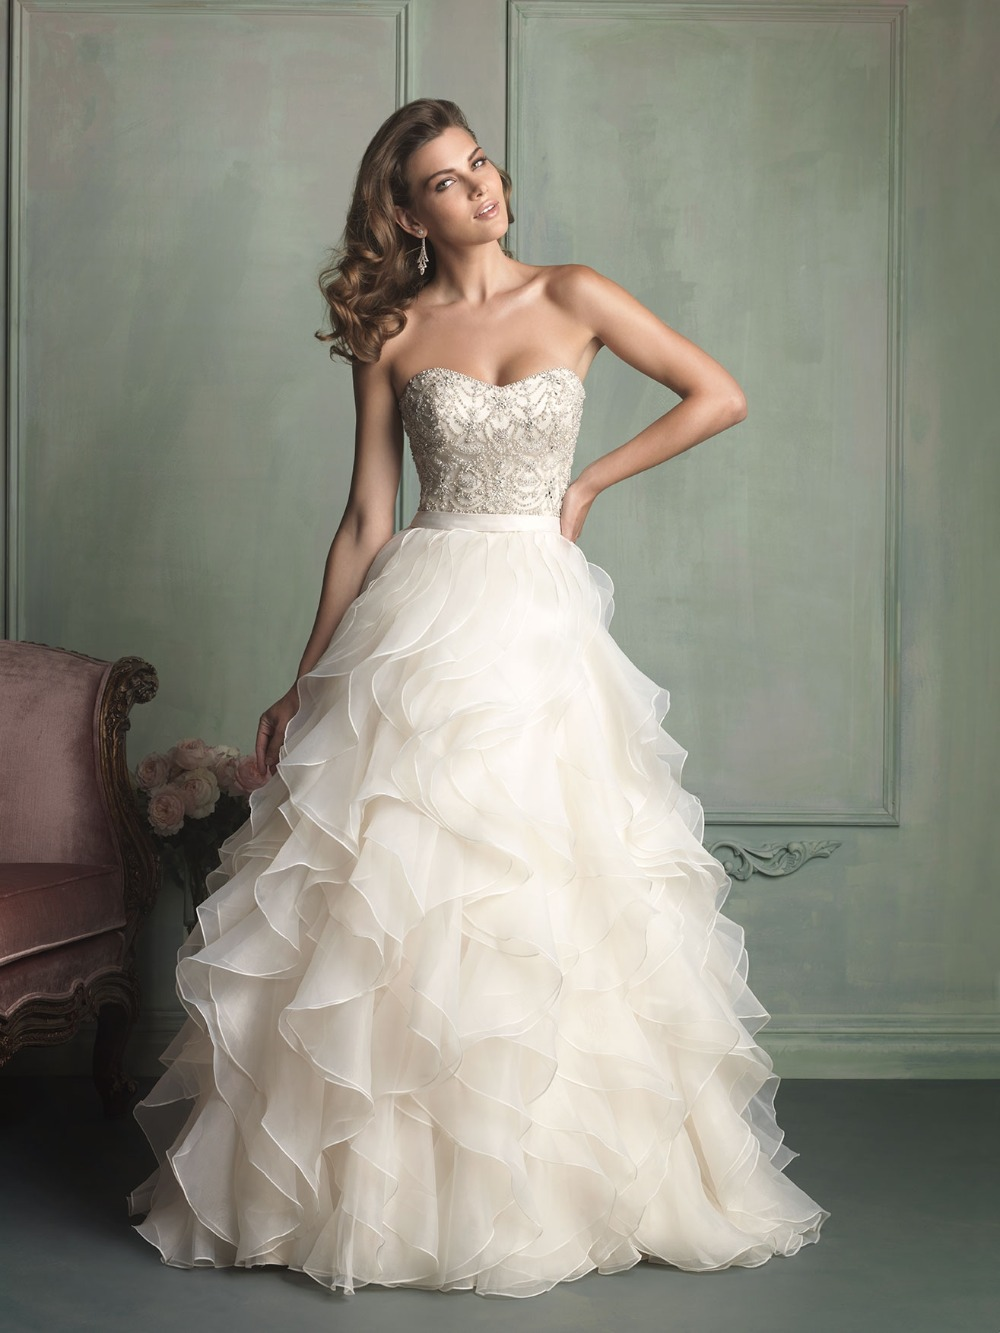 2019 year for girls- Wedding Island dresses style pictures